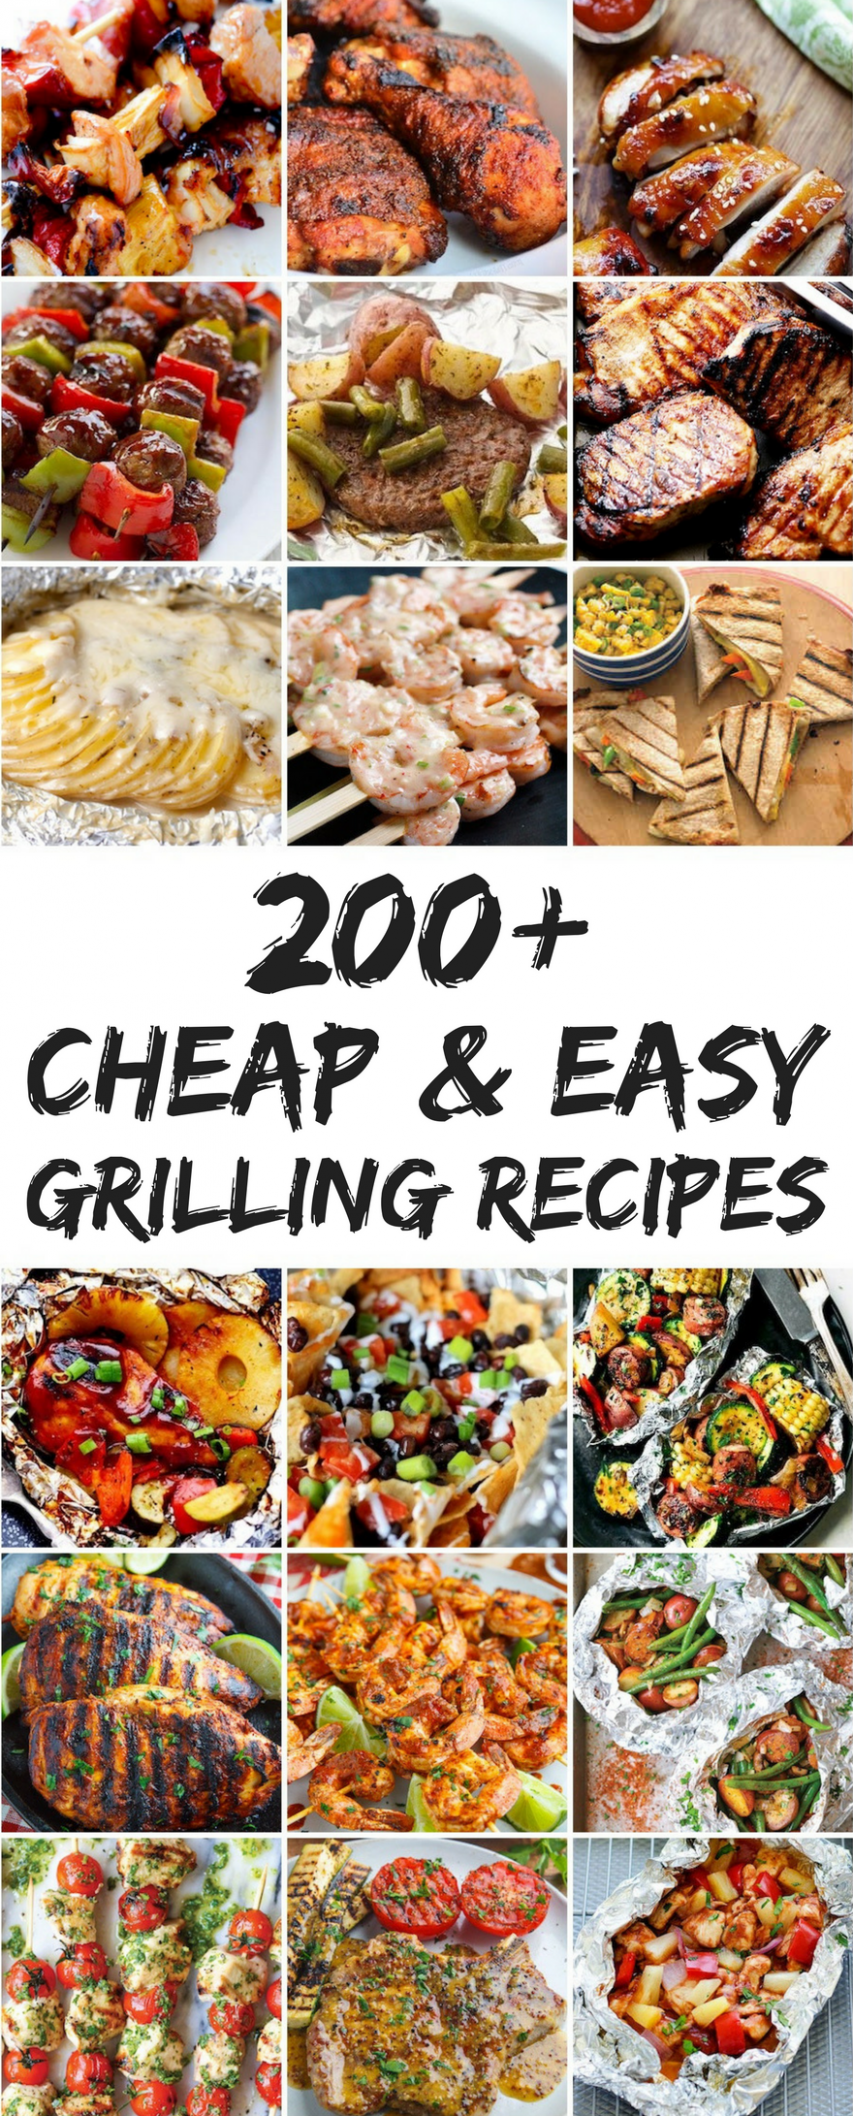 10 Cheap and Easy Grilling Recipes | Grilling recipes, Summer ...